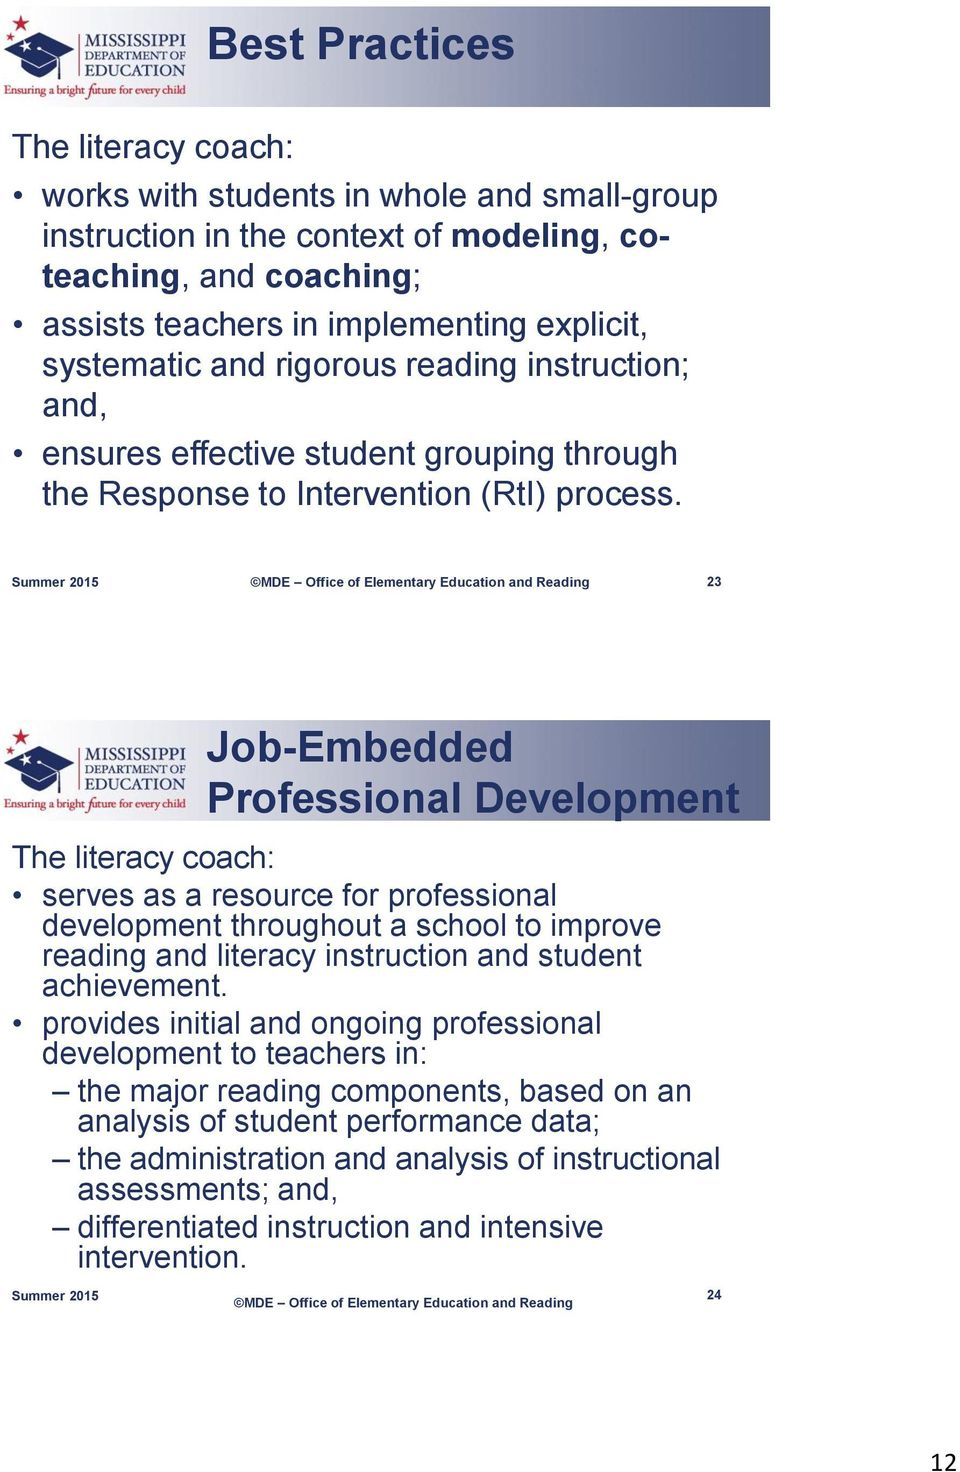 23 Job-Embedded Professional Development The literacy coach: serves as a resource for professional development throughout a school to improve reading and literacy instruction and student achievement.